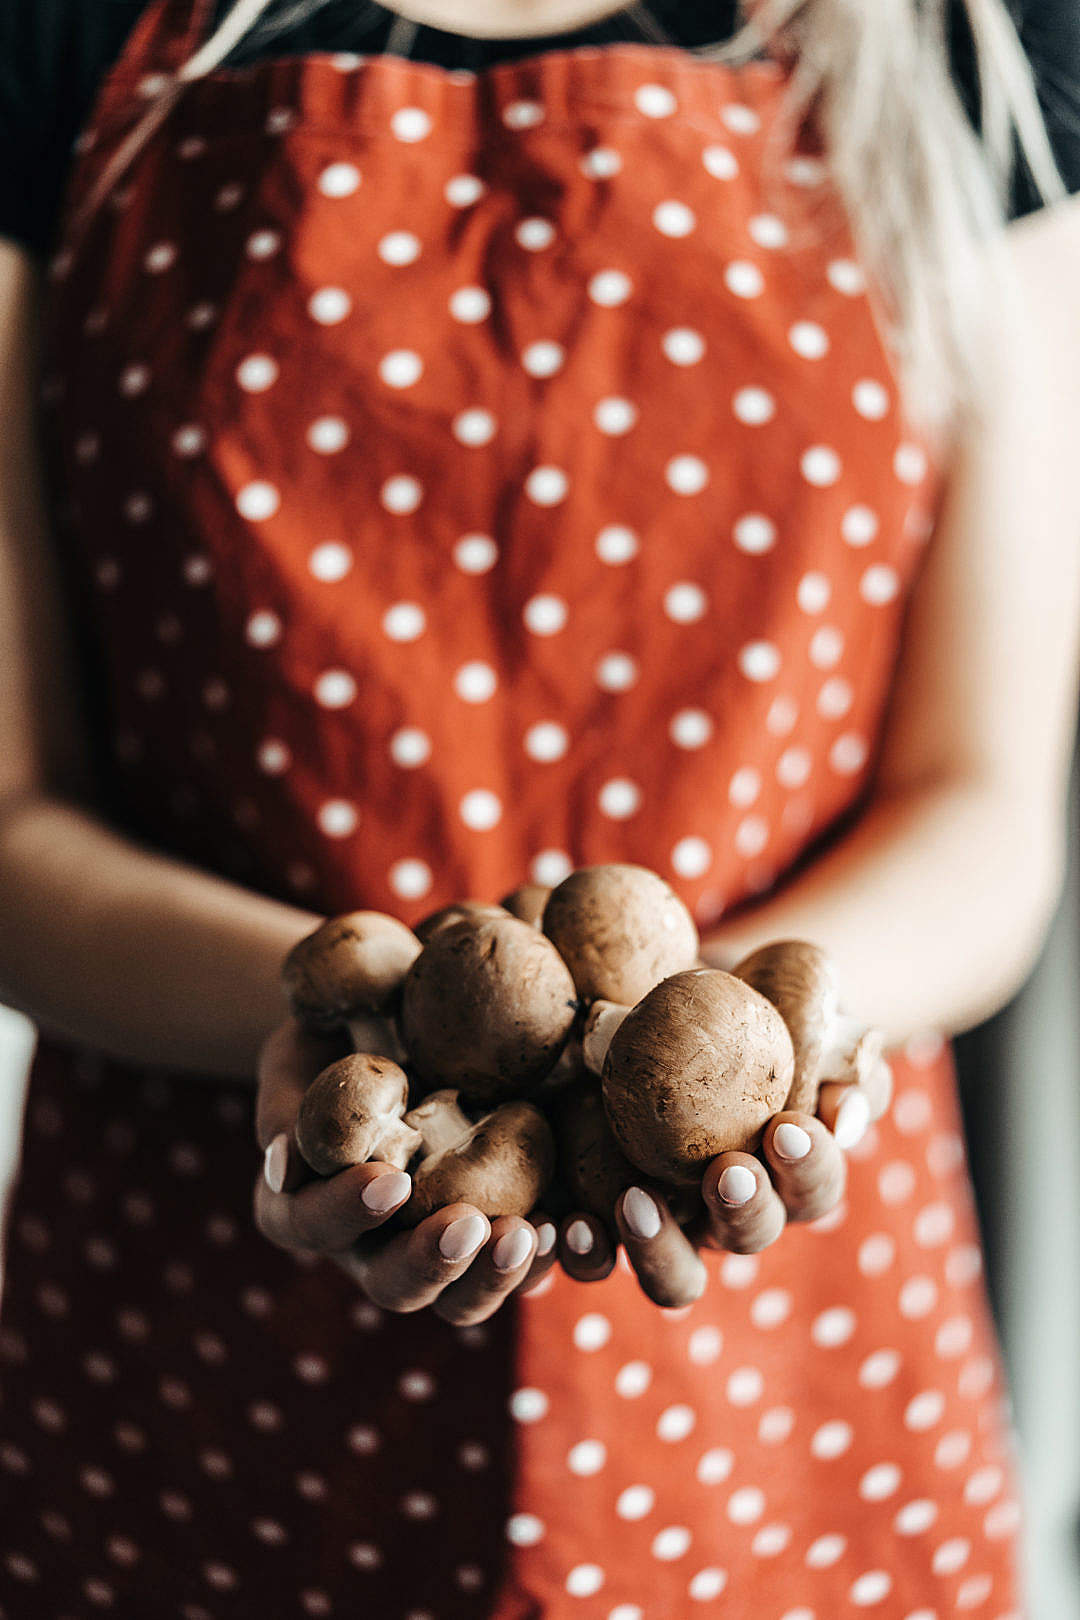 Download Woman Holding Fresh Mushrooms in the Kitchen FREE Stock Photo